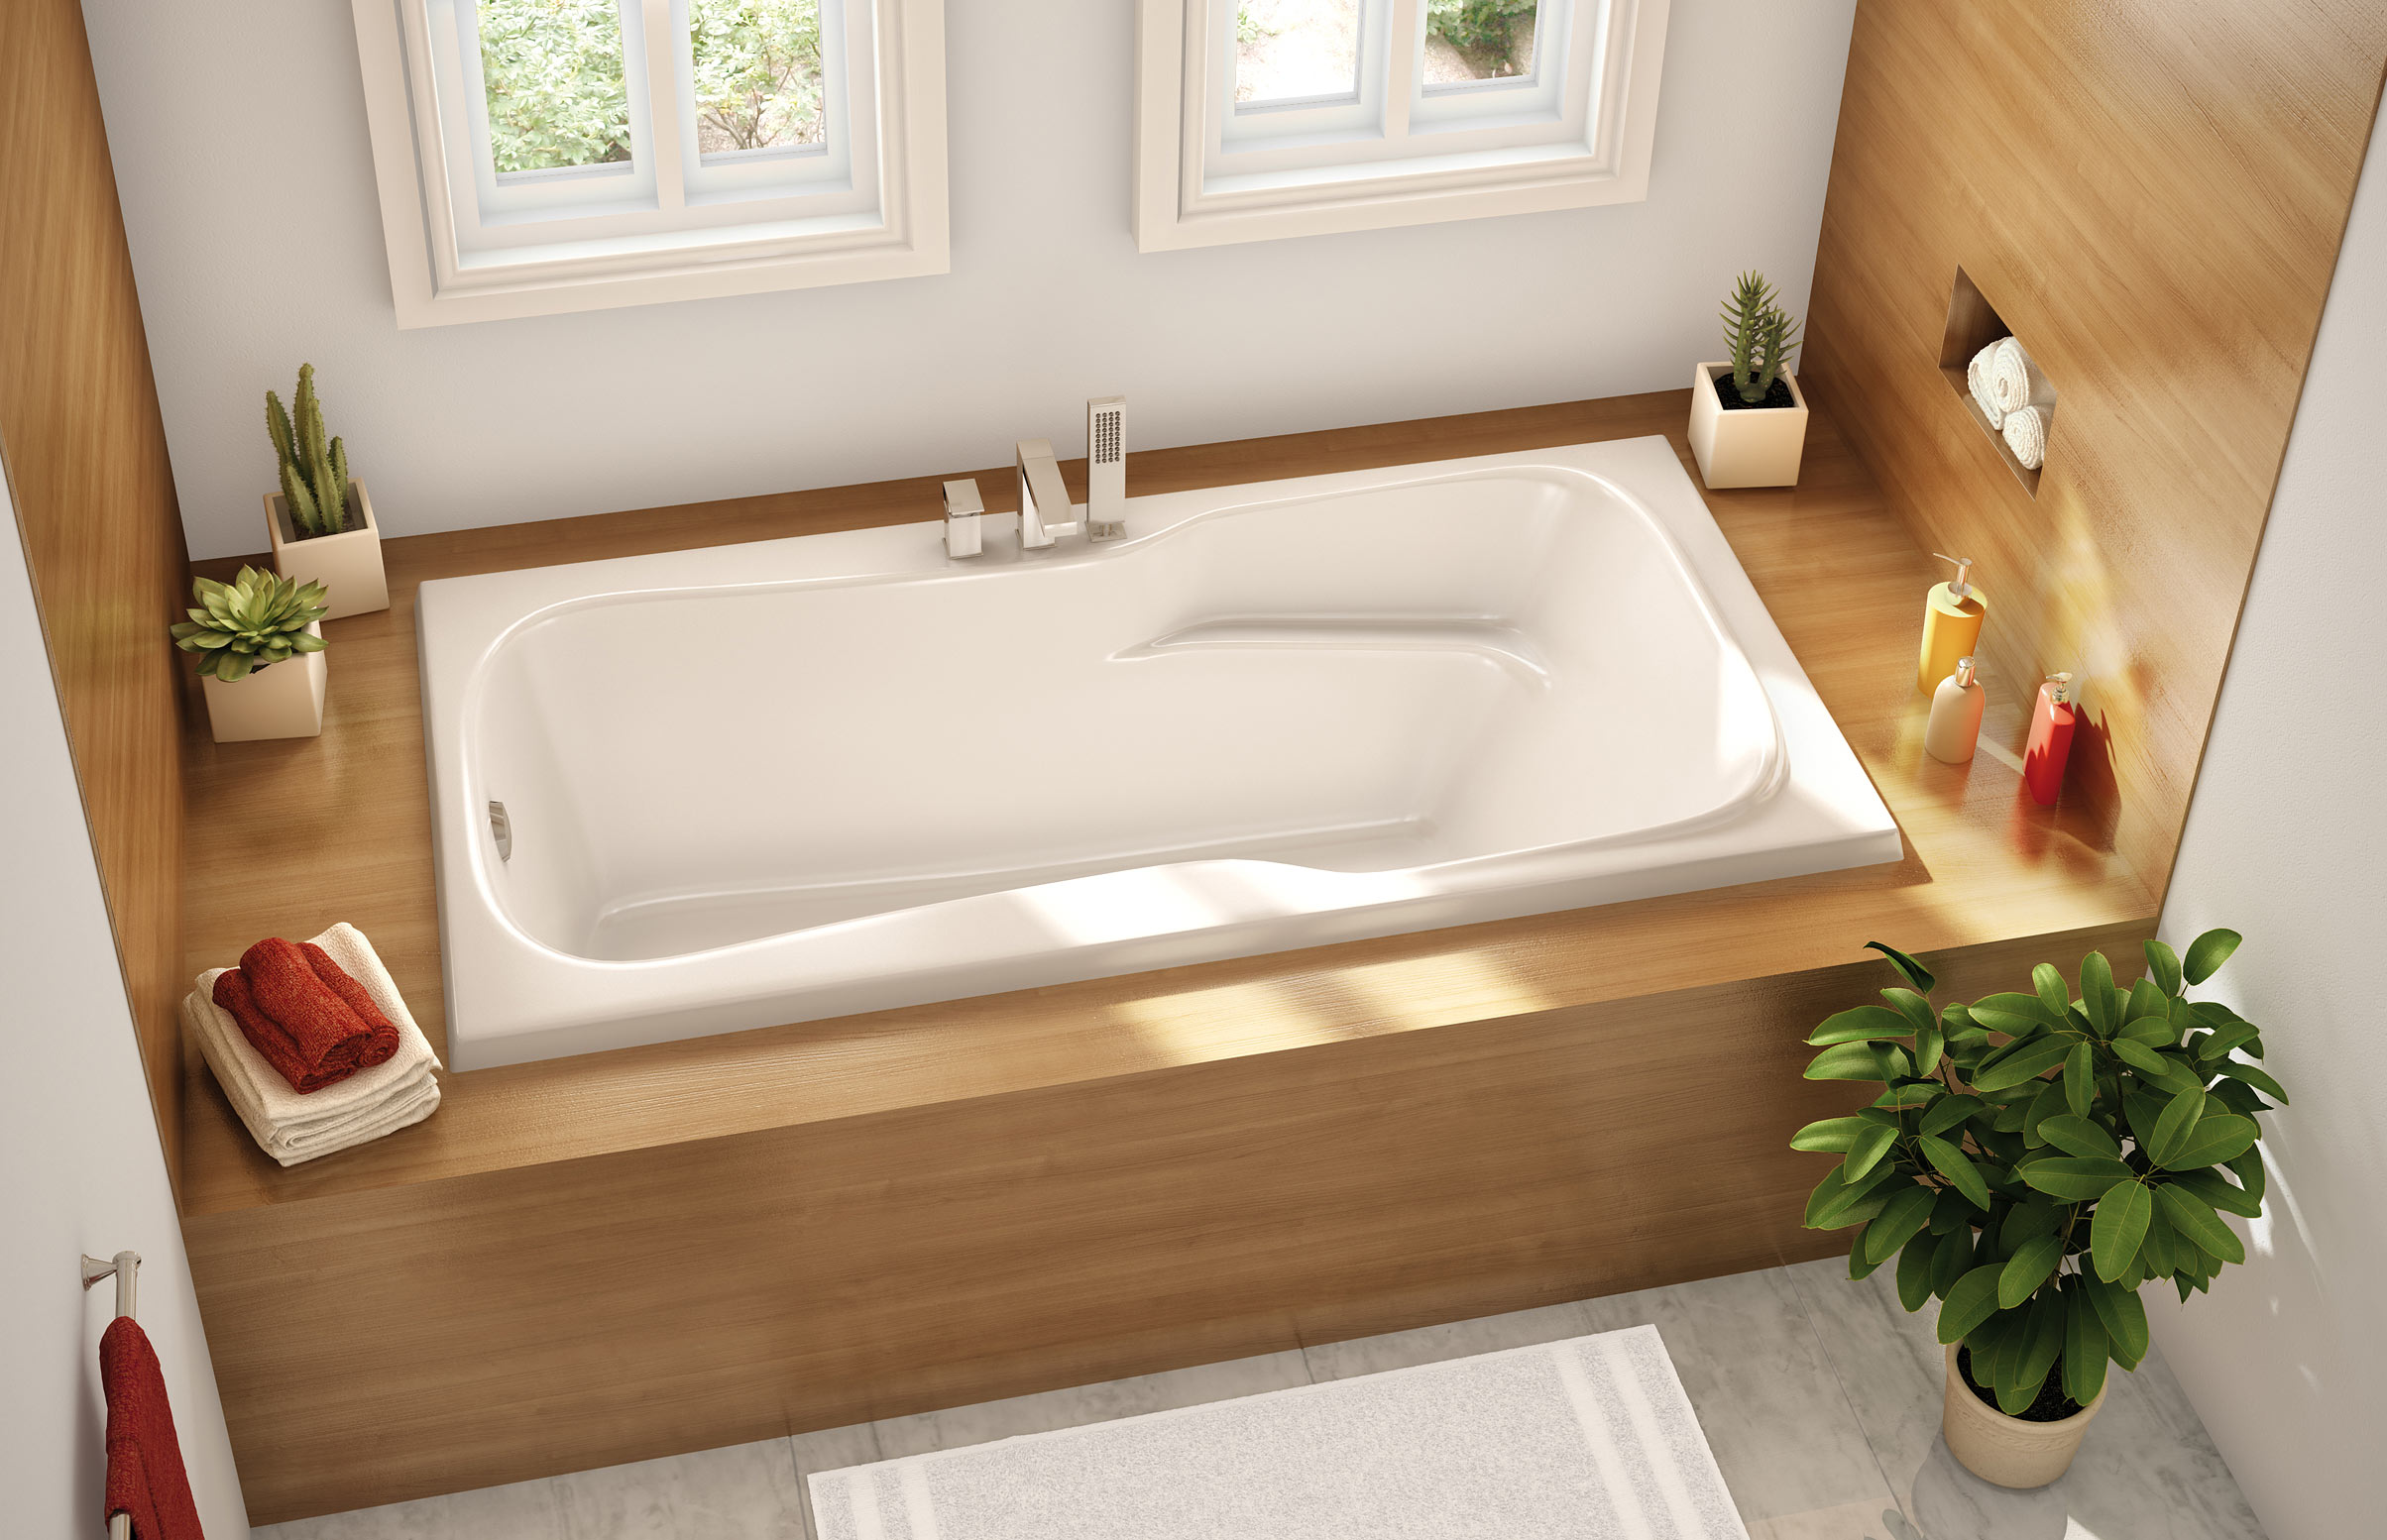 The Best Design Ideas For Hot Tubs U2014 Spa Bathtubs For Small Spaces